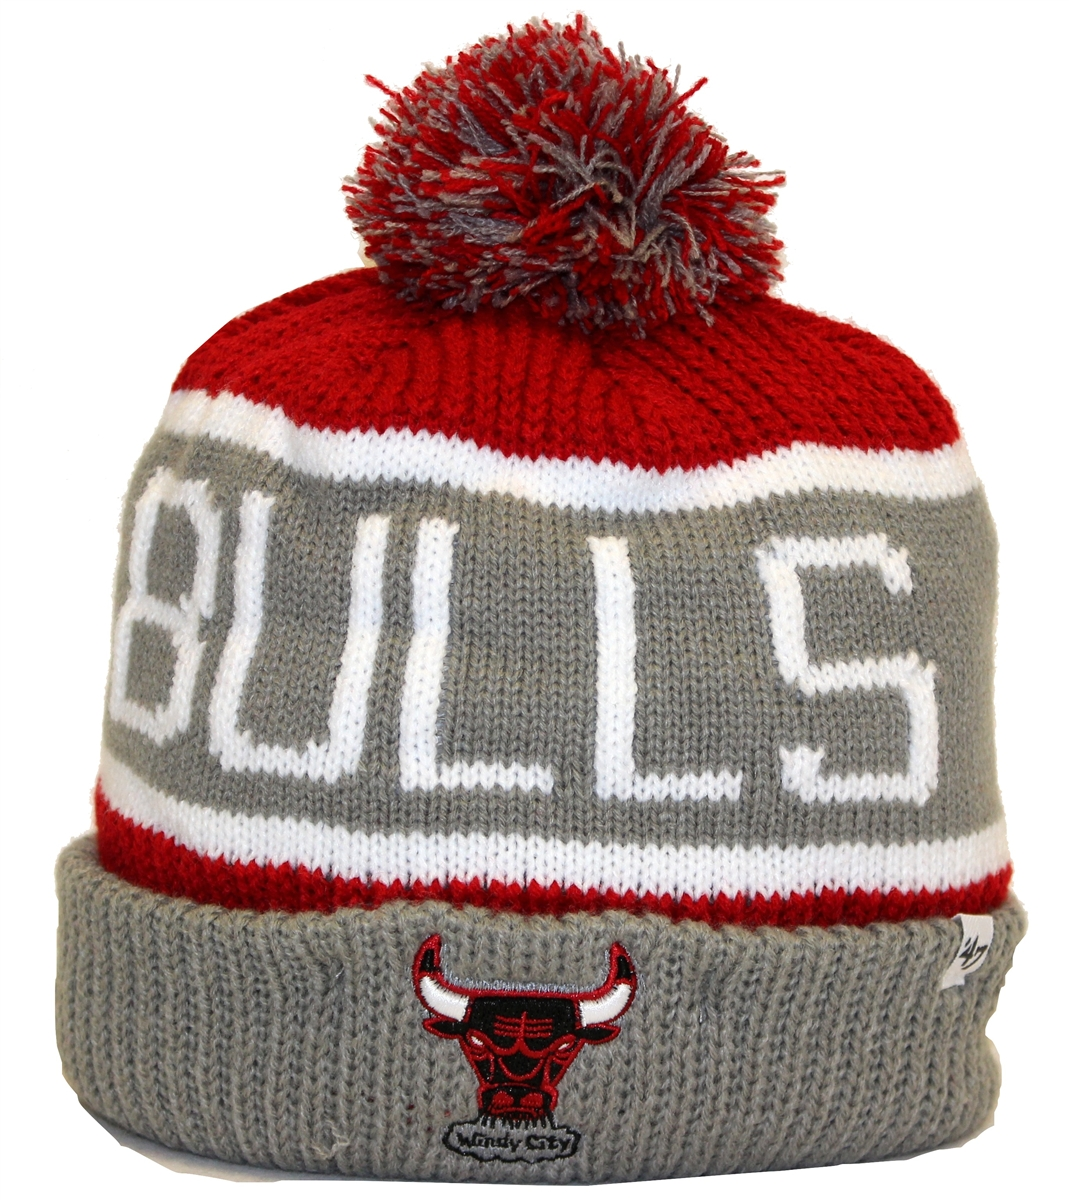 988a7e3a The 47 Brand Calgary Chicago Bulls Gray Red White Beanie